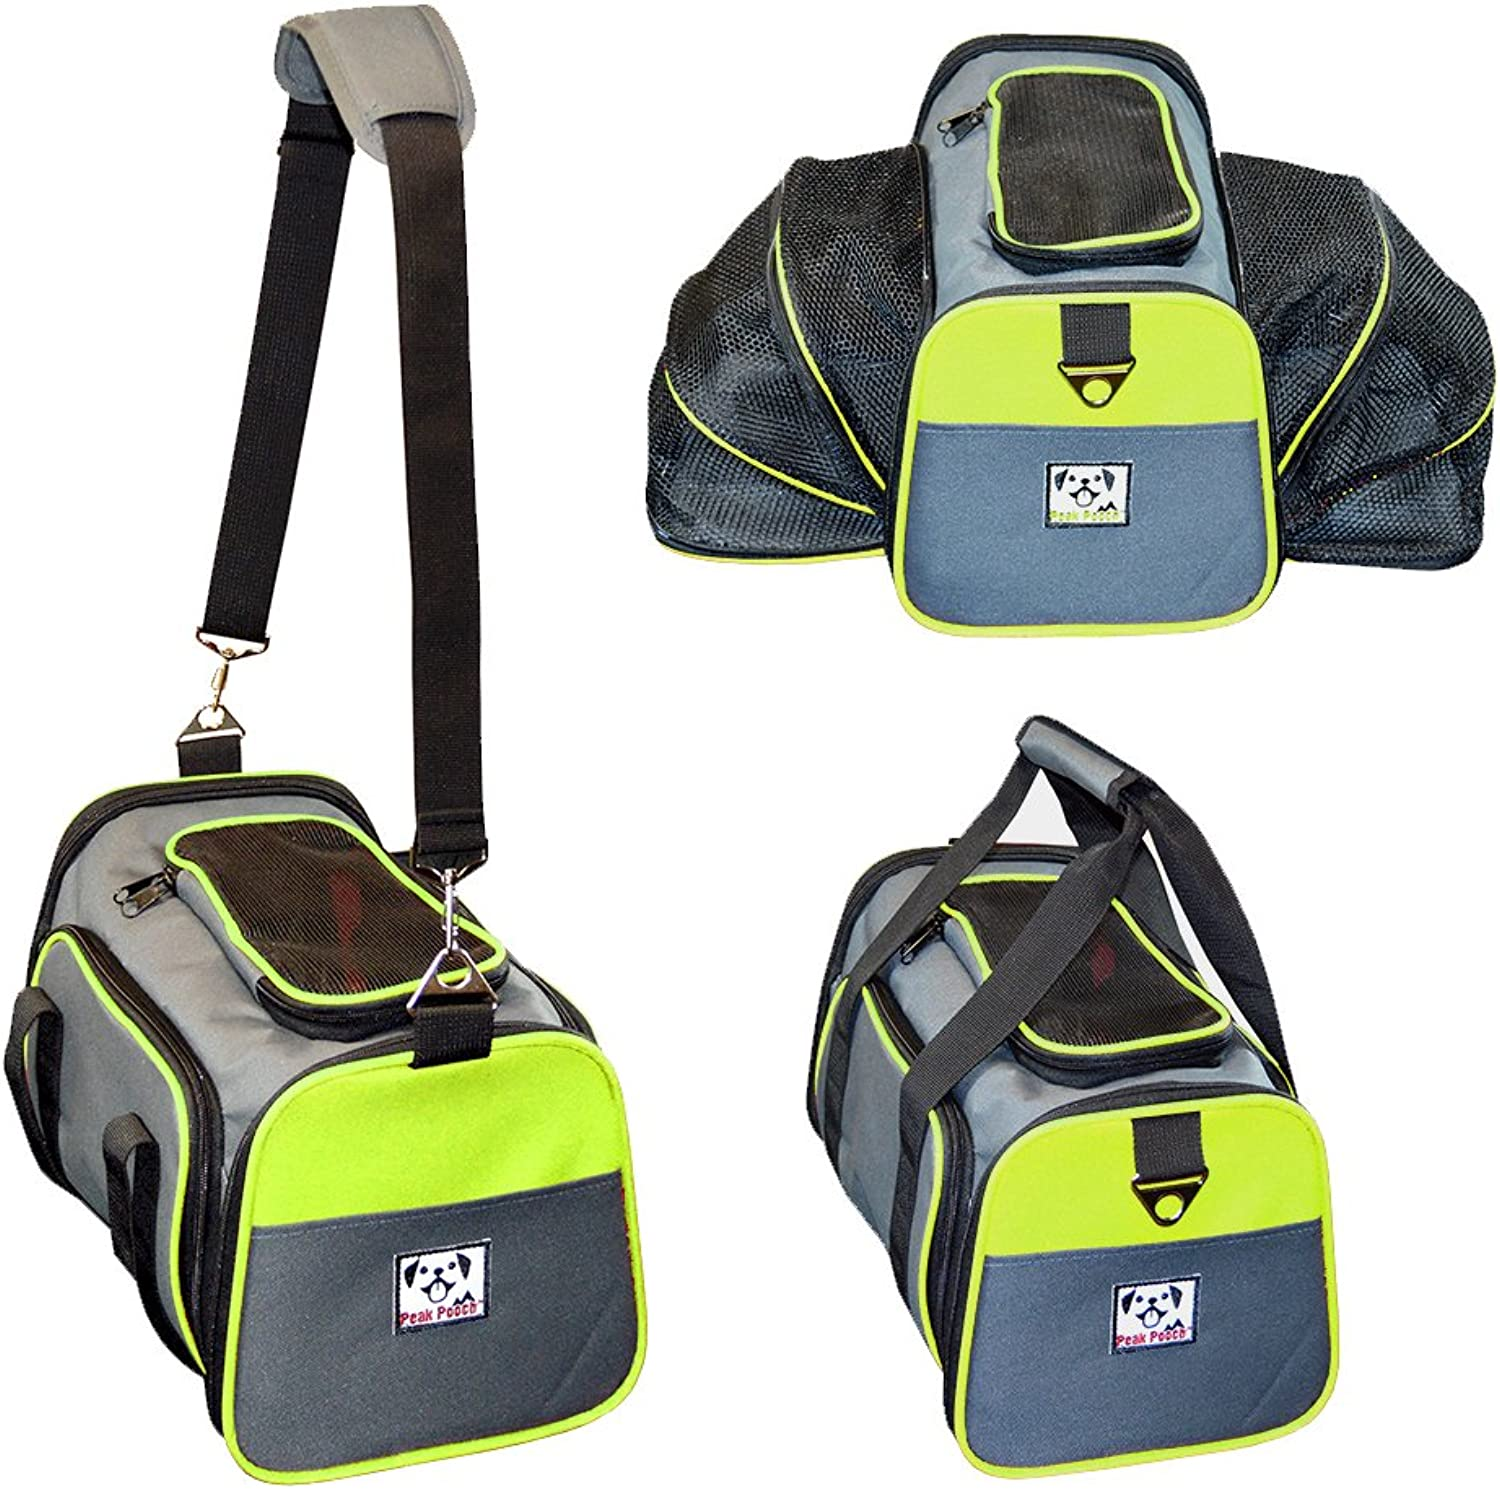 Peak Pooch  Expandable Foldable Airline Approved IATA Carry On Travel Pet Dog Cat SoftSided Carrier w  Fleece Bed  Charcoal (Neon Green Trim, Large)  19x 12x 12 by Peak Pooch